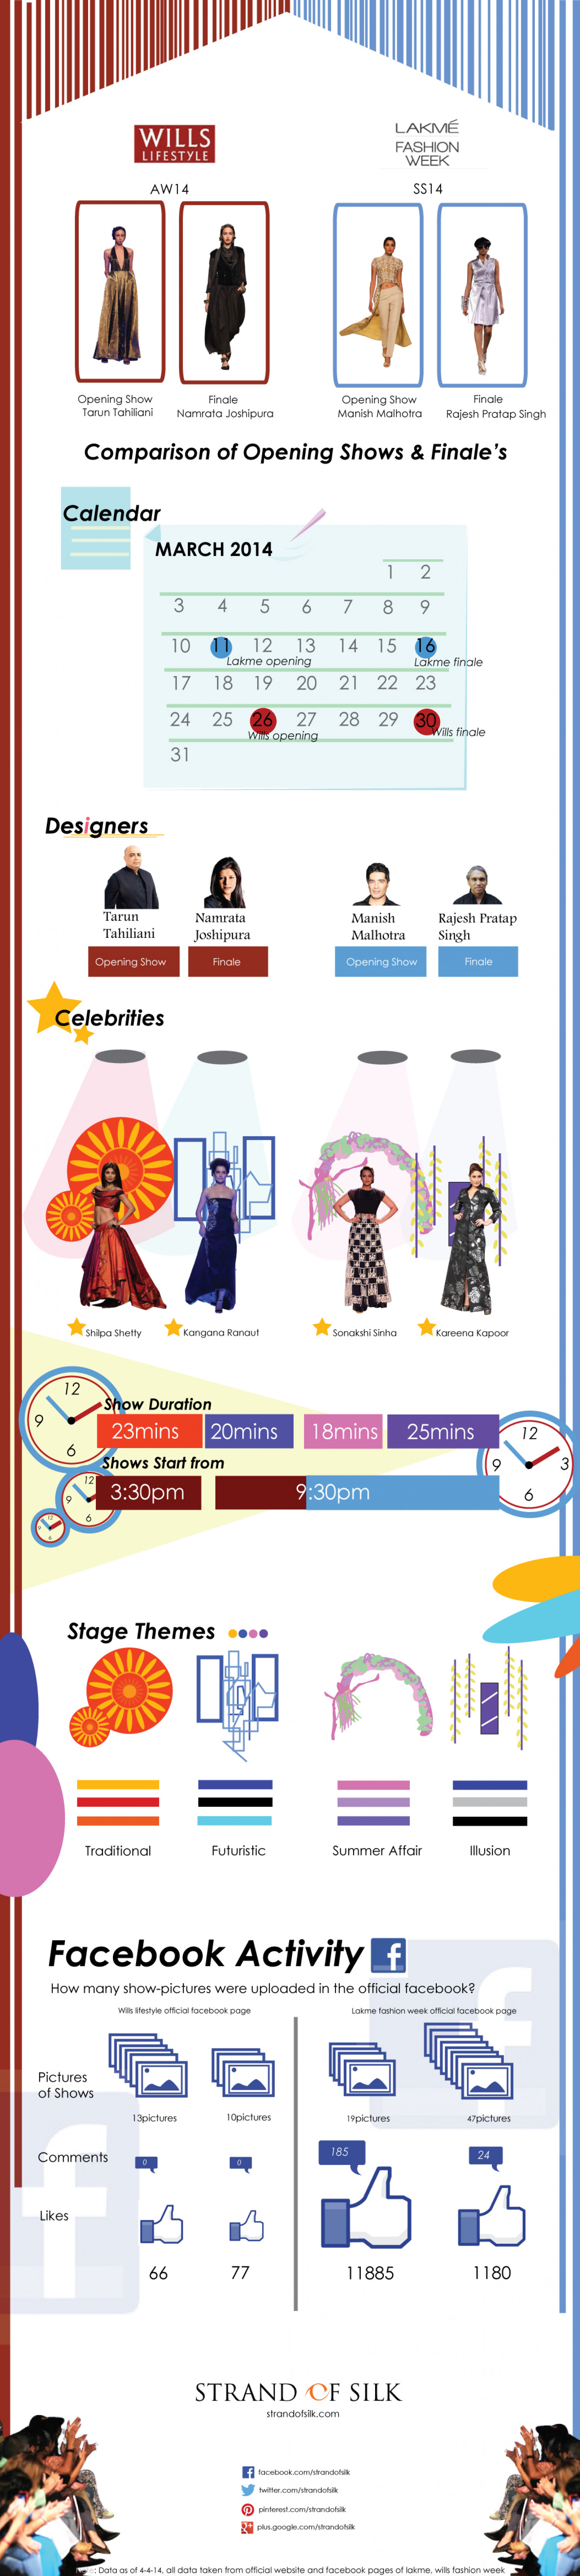 Comparison of Opening Shows and Finale's of Indian Fashion Weeks - Lakme Fashion Week and Wills Lifestyle India Fashion Week  Infographic